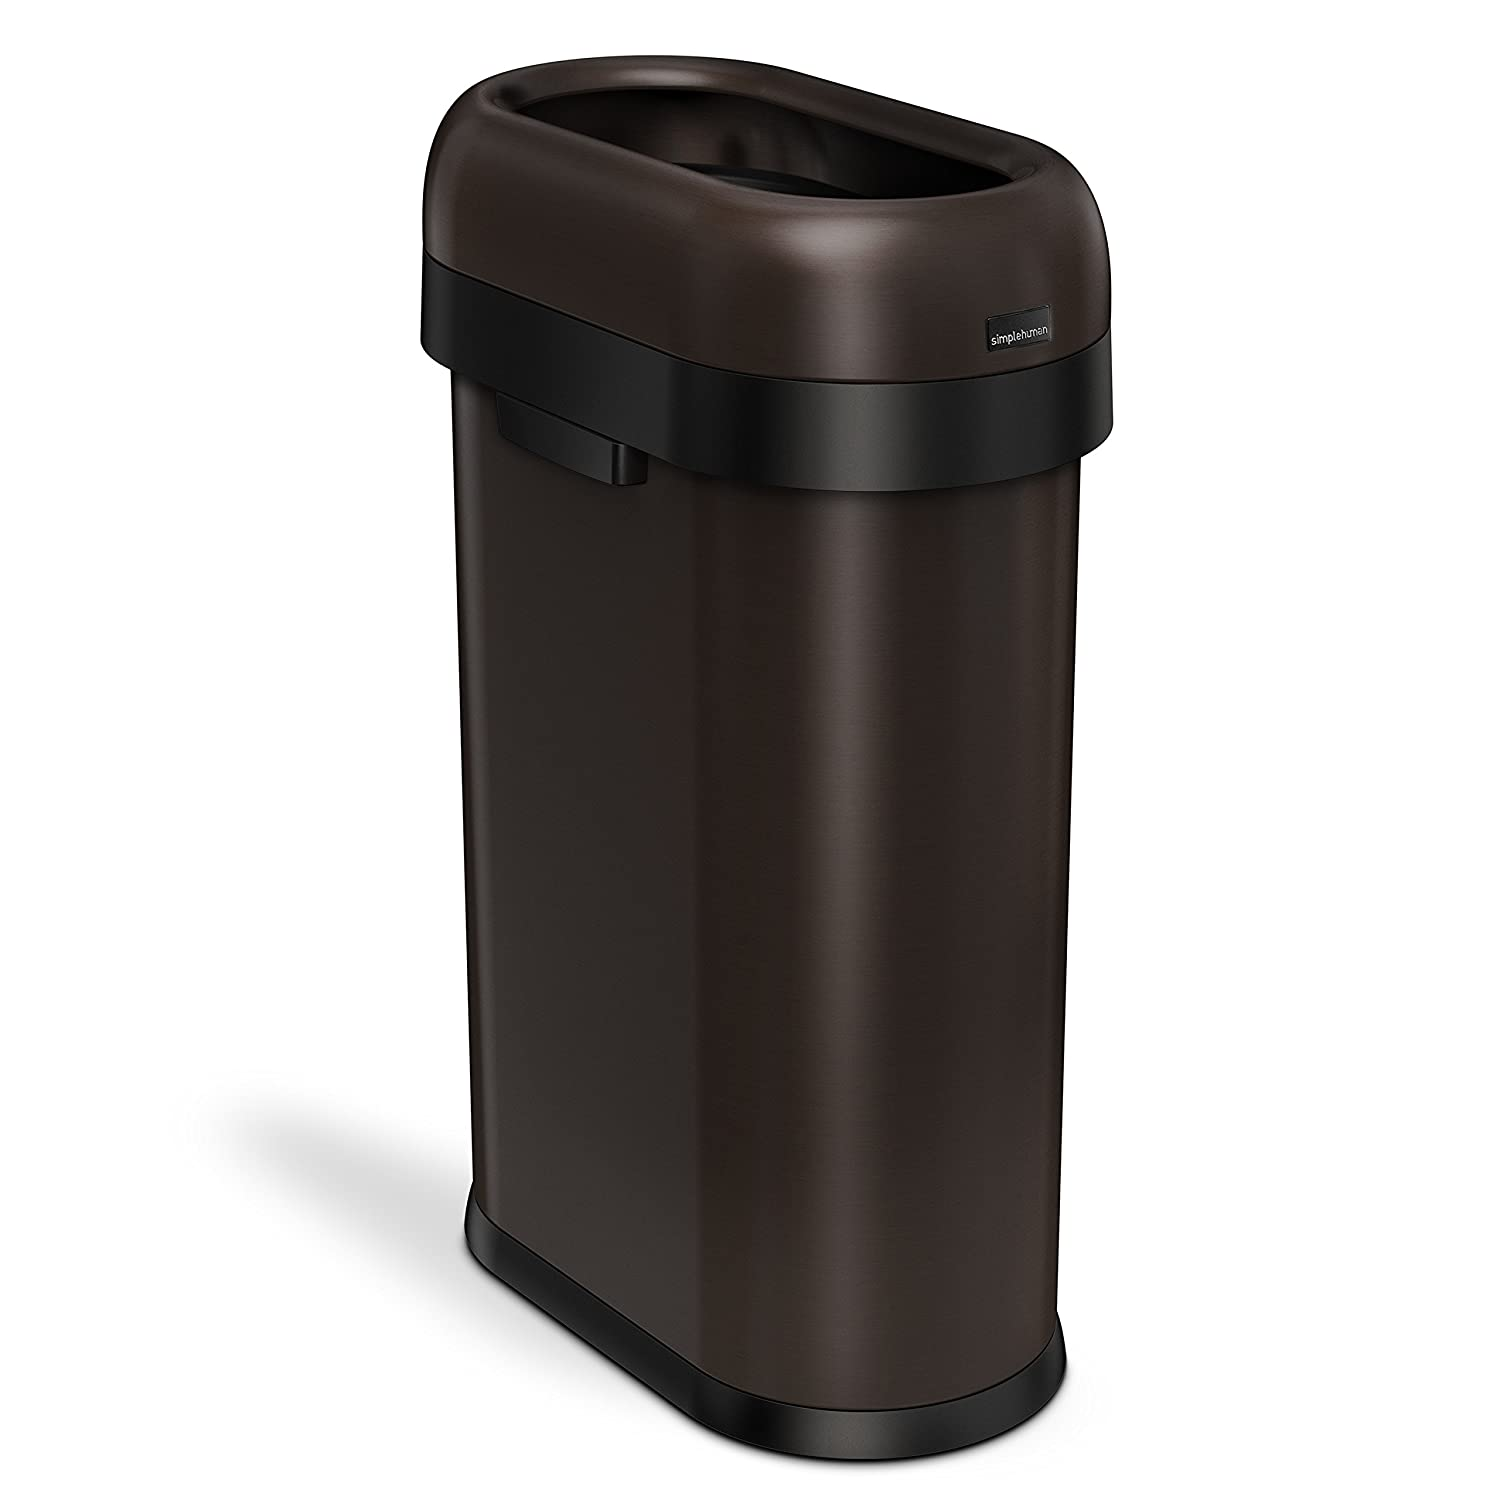 simplehuman Slim Open Top Trash Can, Commercial Grade, Heavy Gauge Dark Bronze Stainless Steel, 50 L / 13 Gal